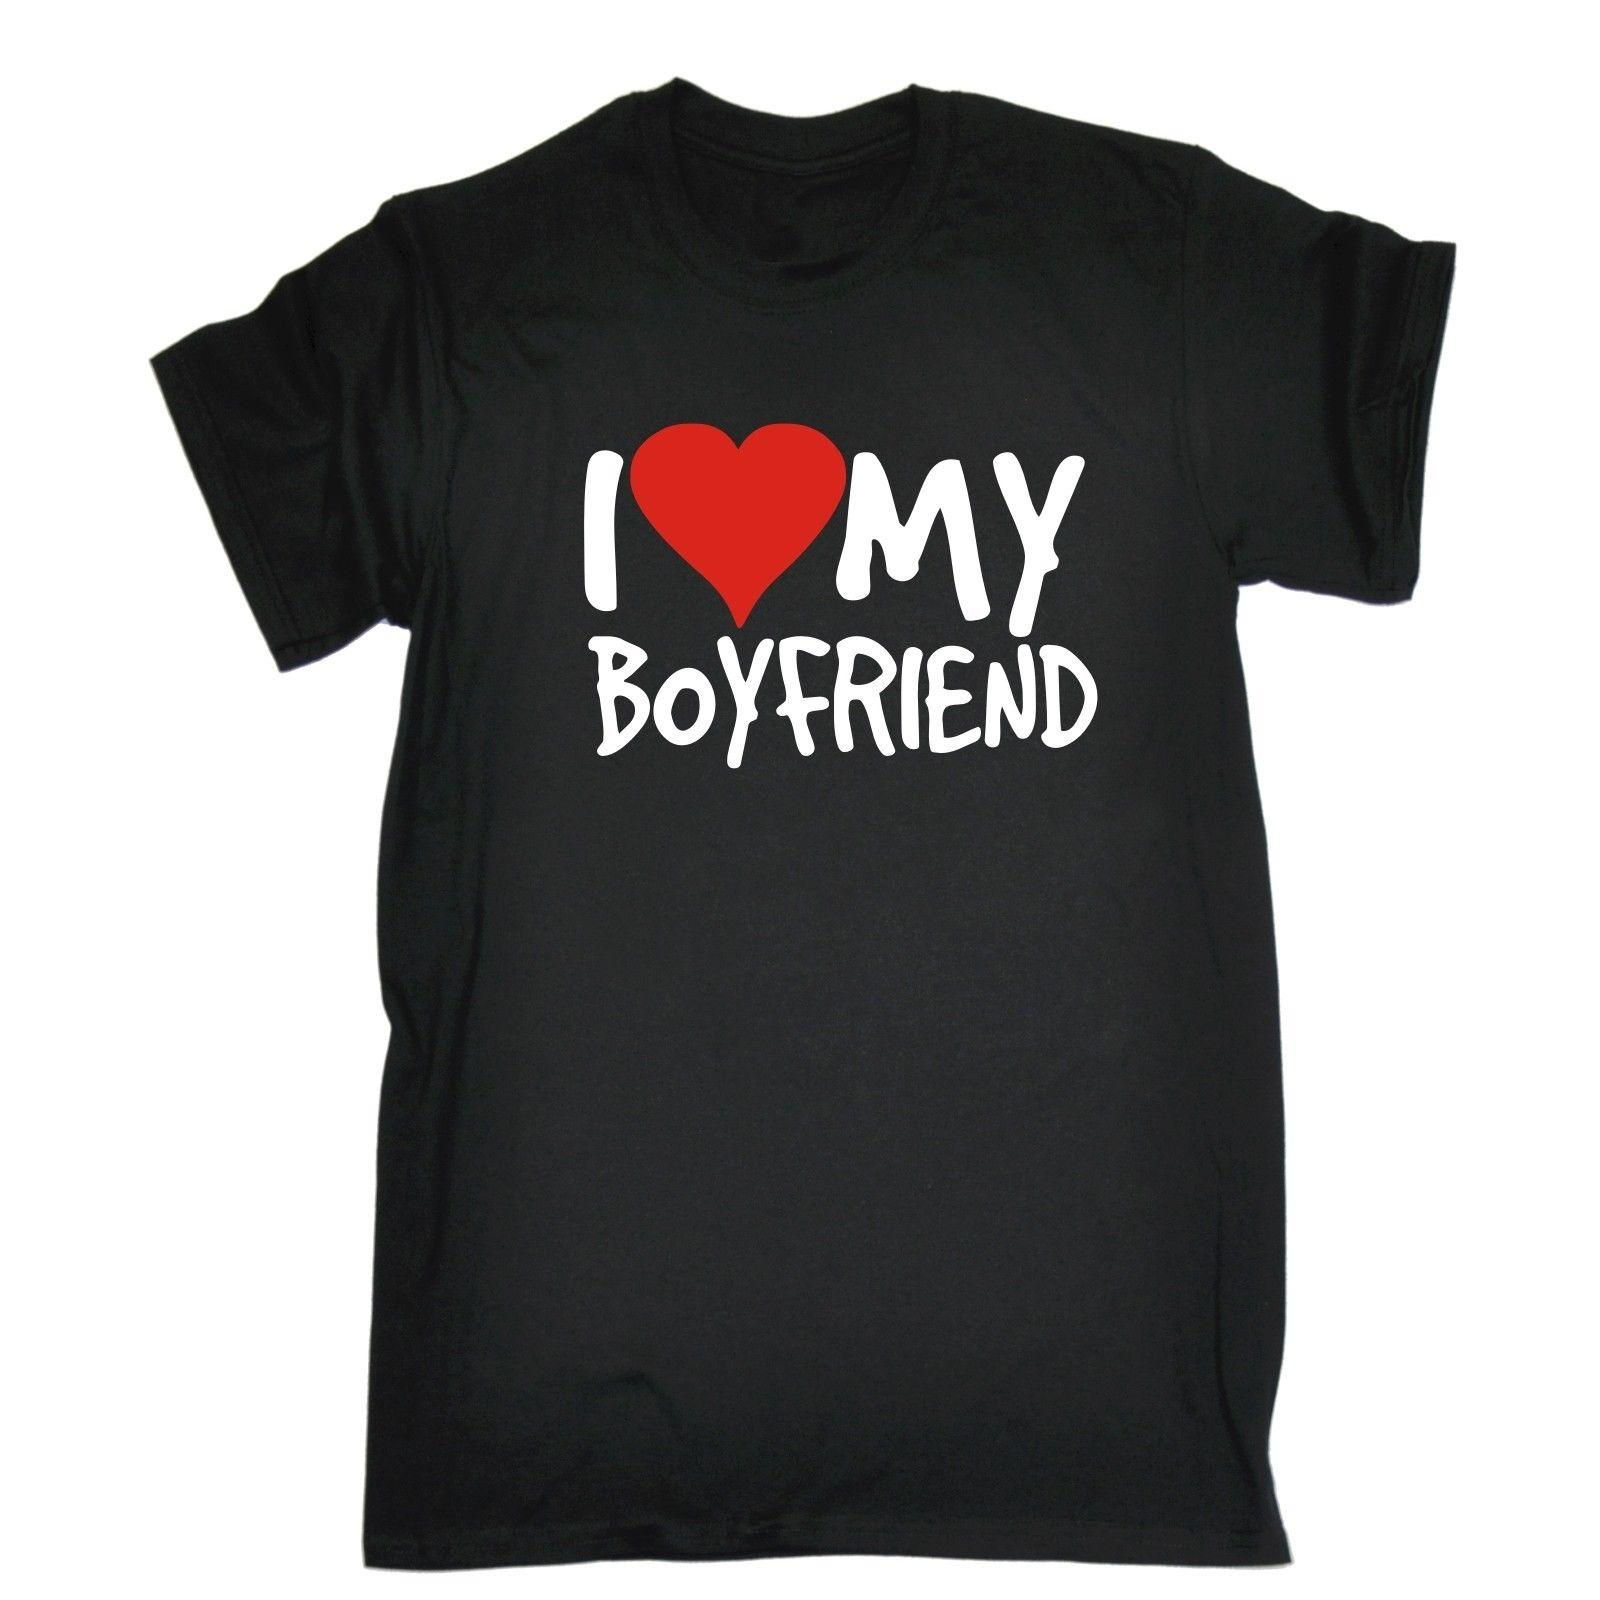 I Love My Boyfriend T SHIRT Dating Valentines Girlfriend Funny Birthday Gift That Shirt But Shirts From Rutmerch 1101